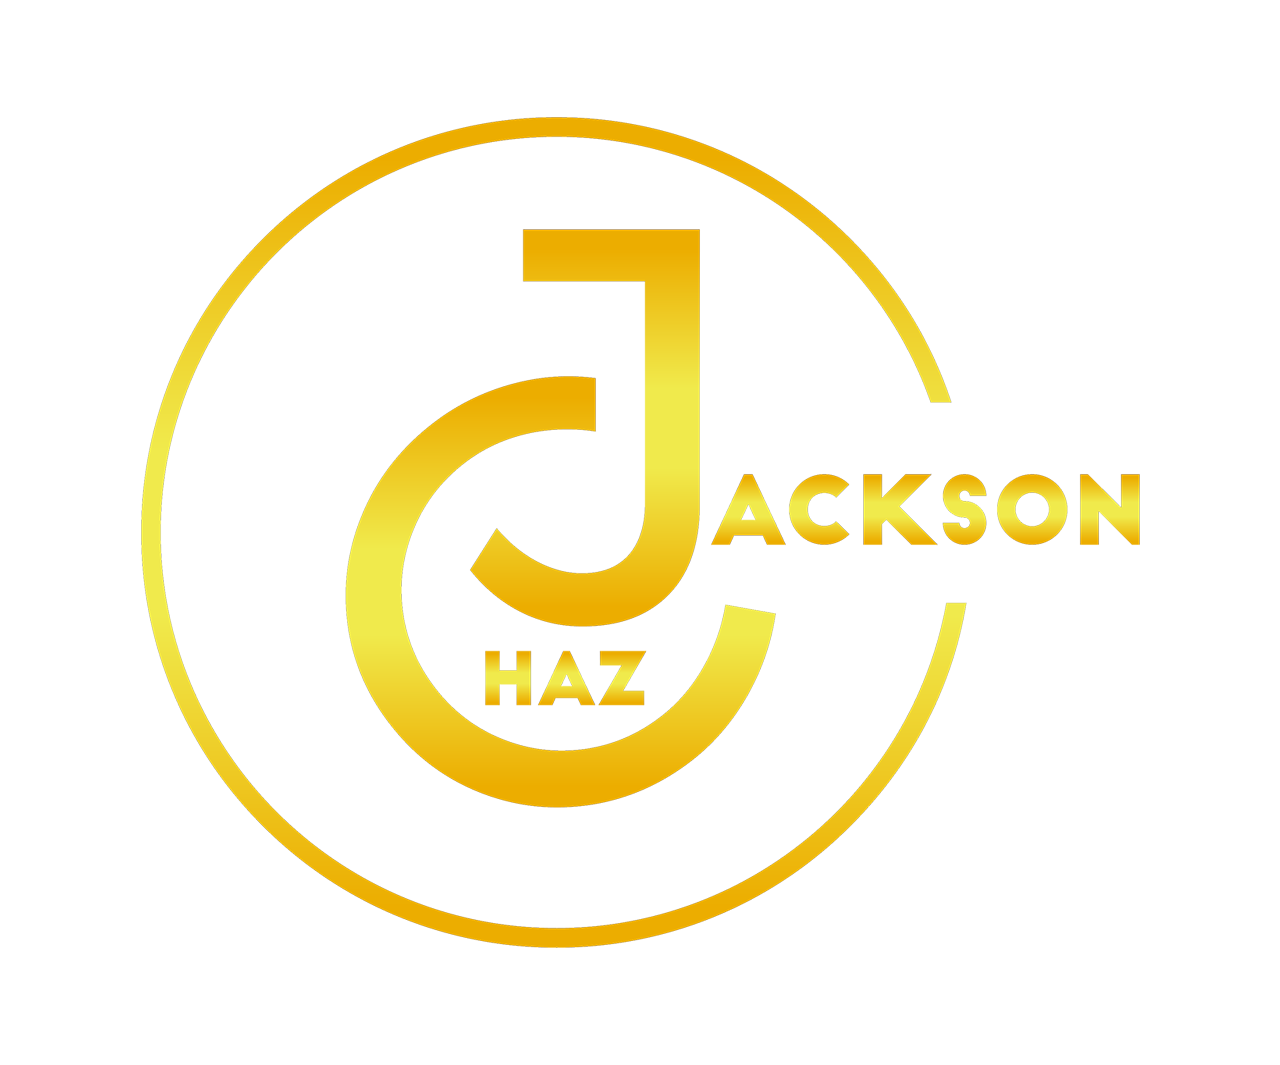 Chaz Jackson and Leadership Motivational Youth Speaker gold logo